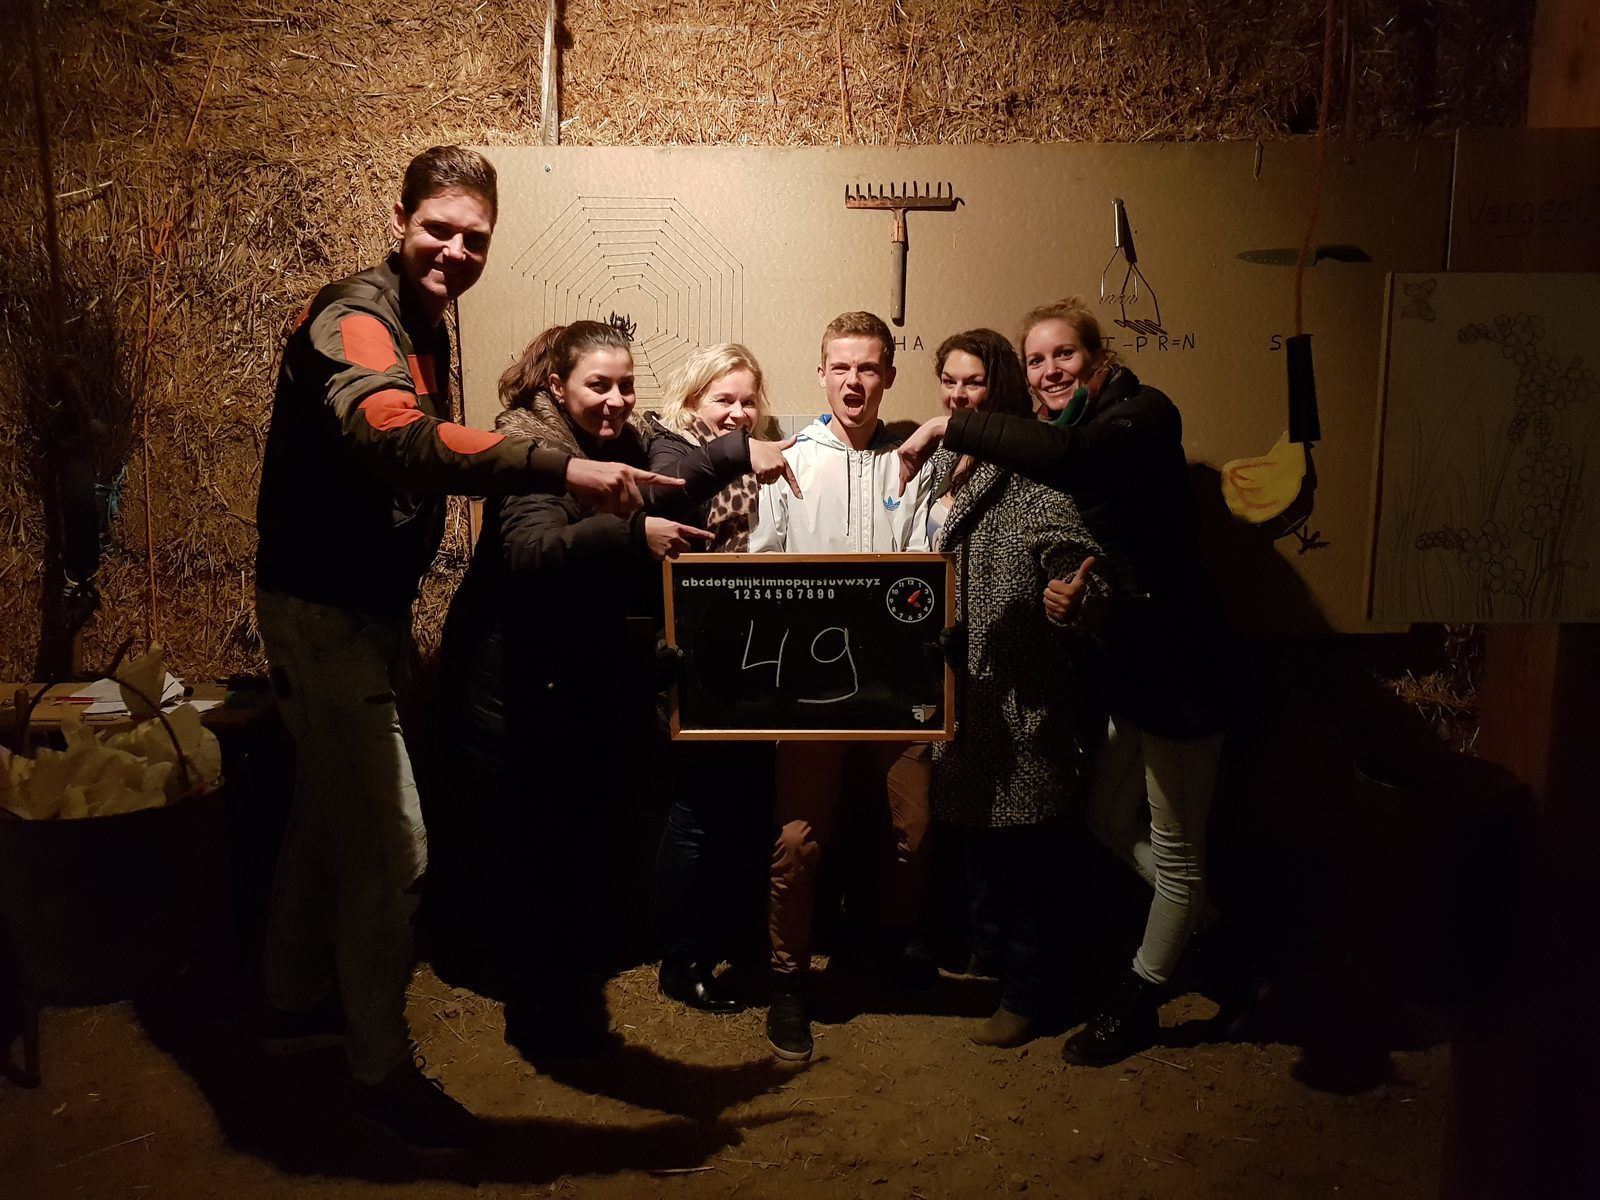 Escape room in Voorthuizen